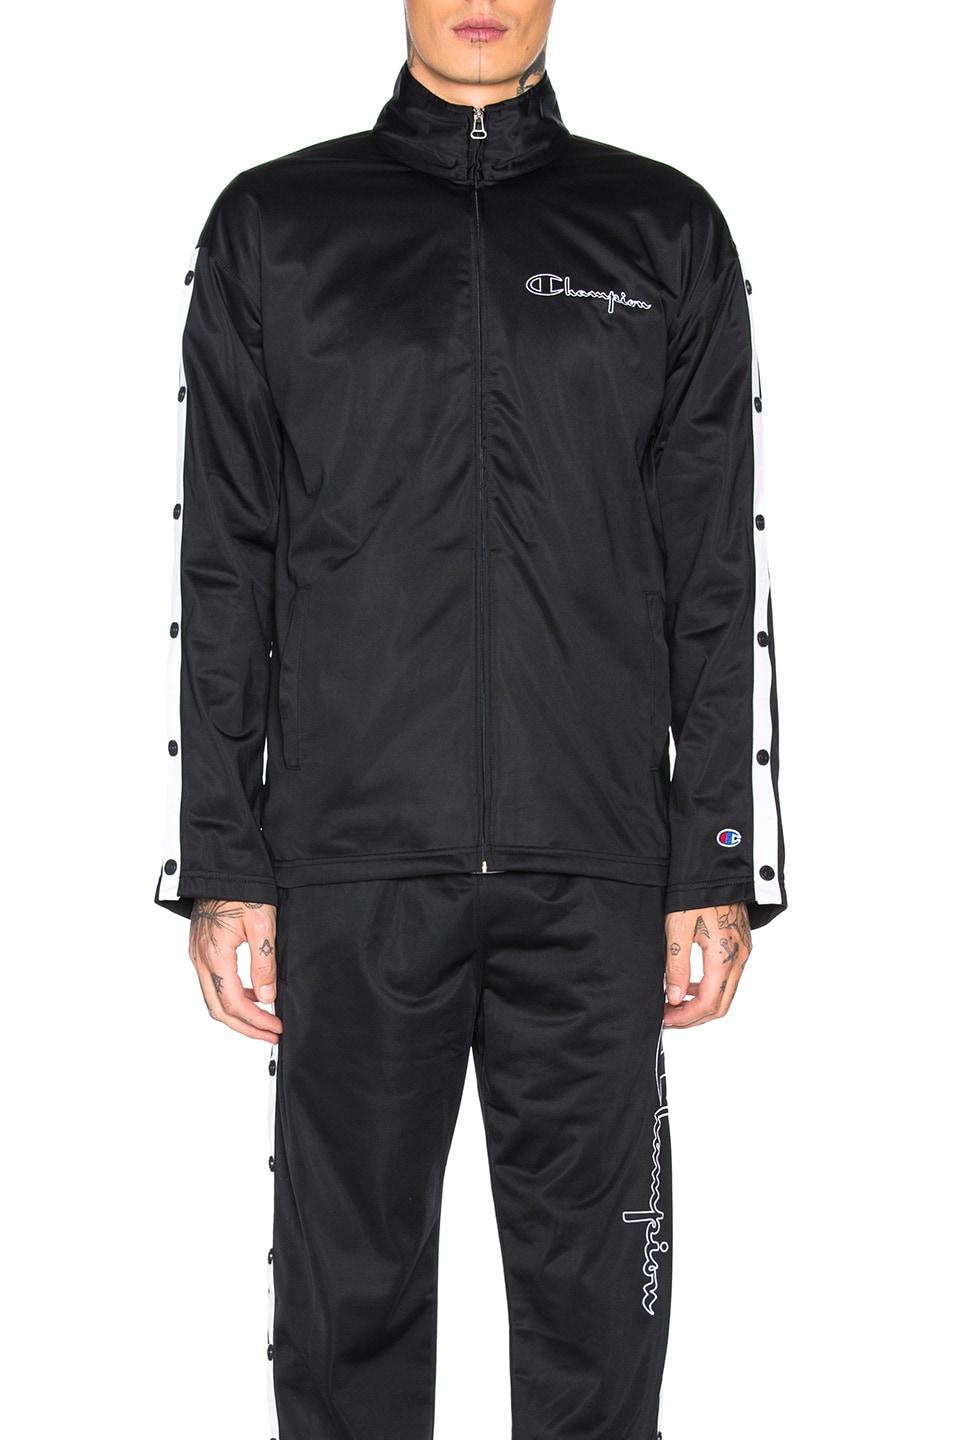 Image 2 of Champion Reverse Weave Champion Full Zip Jacket in Black & White